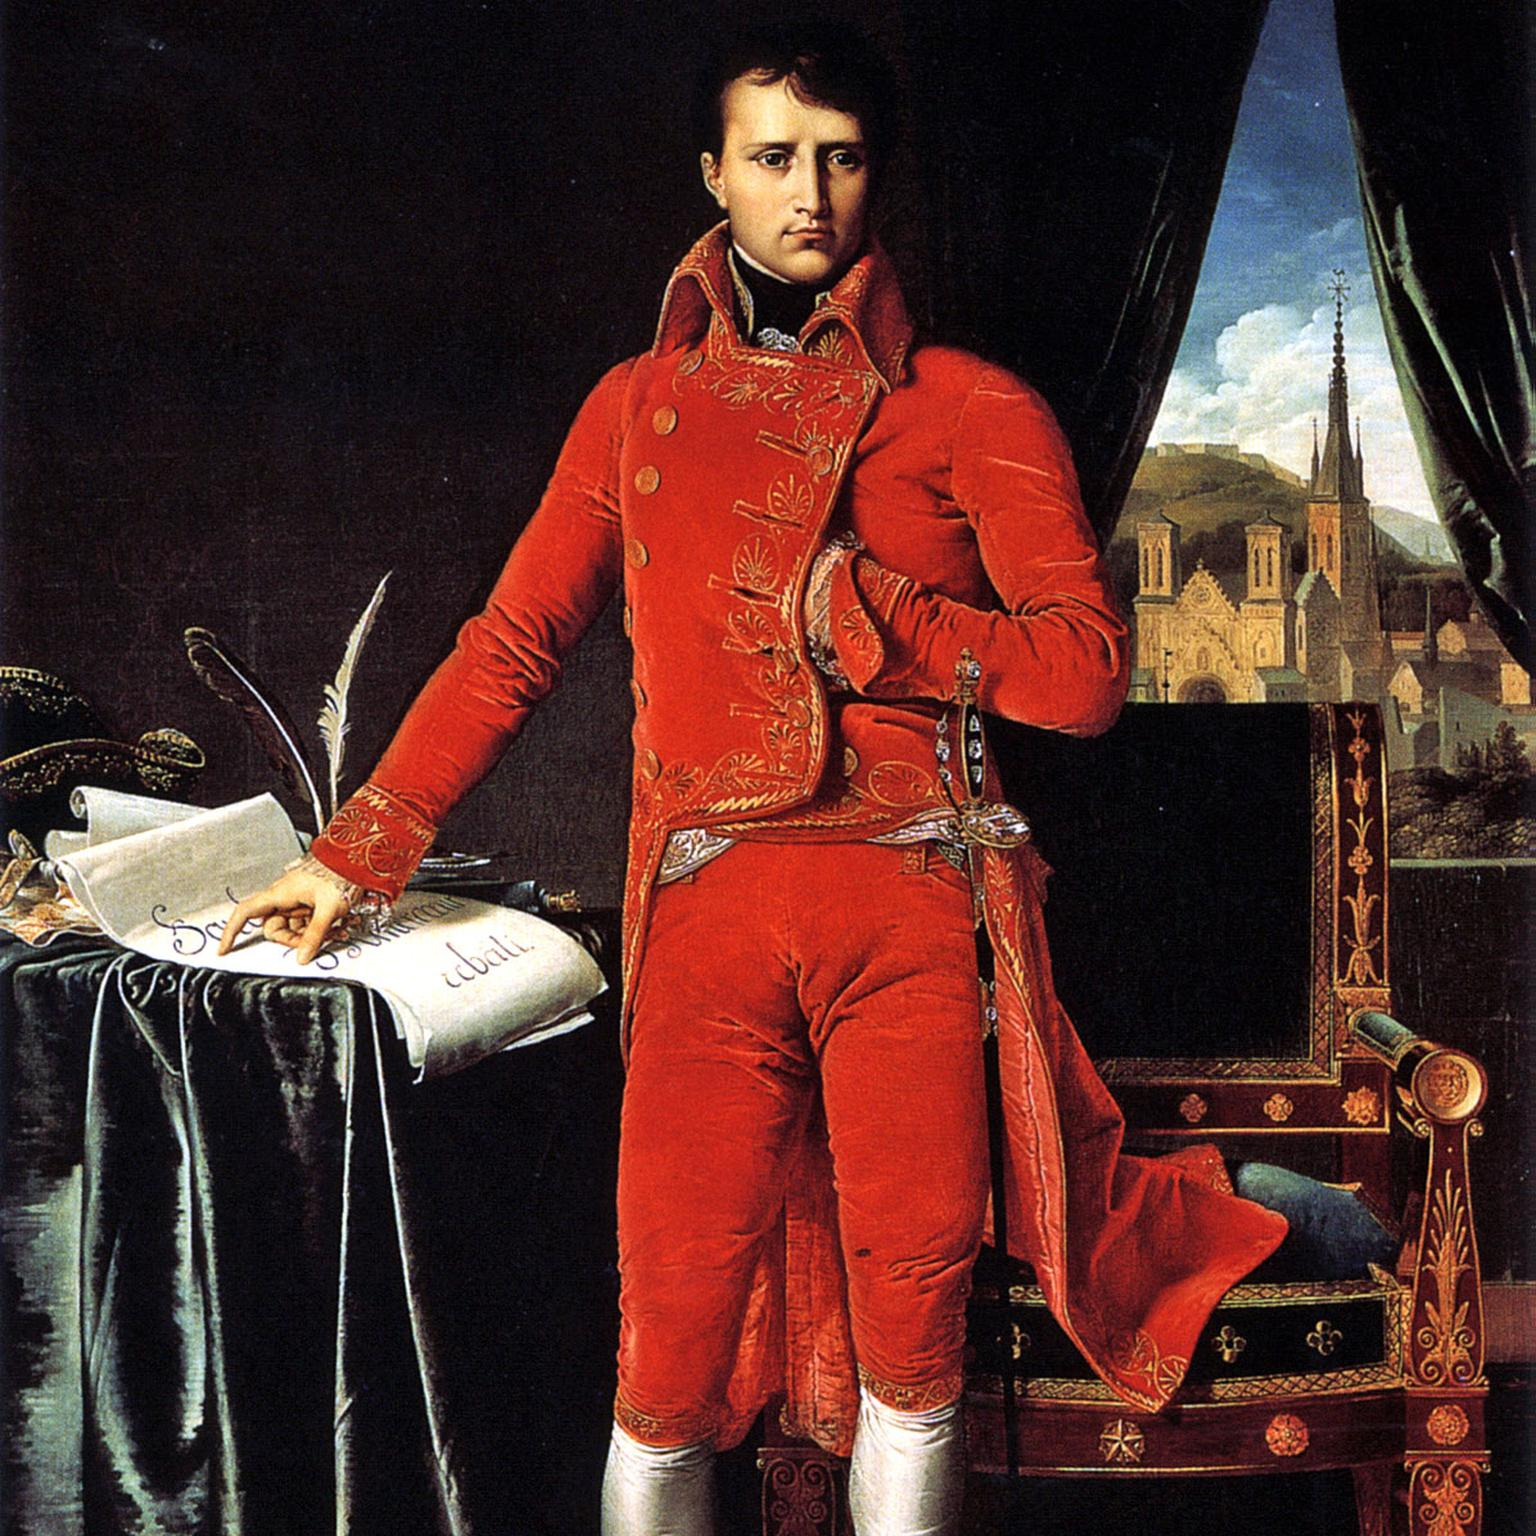 Ingres portrait of Napoleon